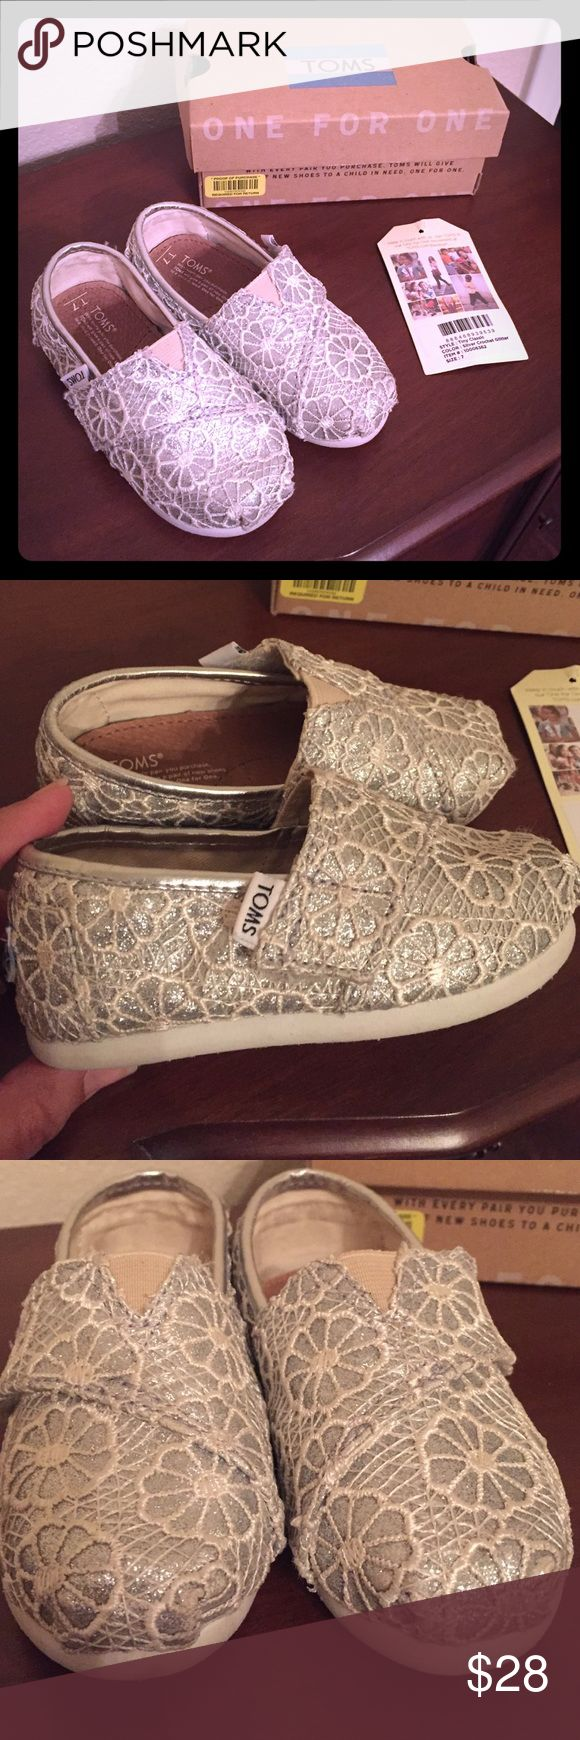 Adorable silver crochet TINY TOMS! Toddler Tiny Toms, perfect for your girly girl tot  In a neutral silver and creme lace overlay, these Toms are perfect for the holidays! Size 7T. Very gently used in EUC!! Comes with original box, Toms sticker, and tag. From a smoke and pet free home. Thanks for looking!  TOMS Shoes Dress Shoes